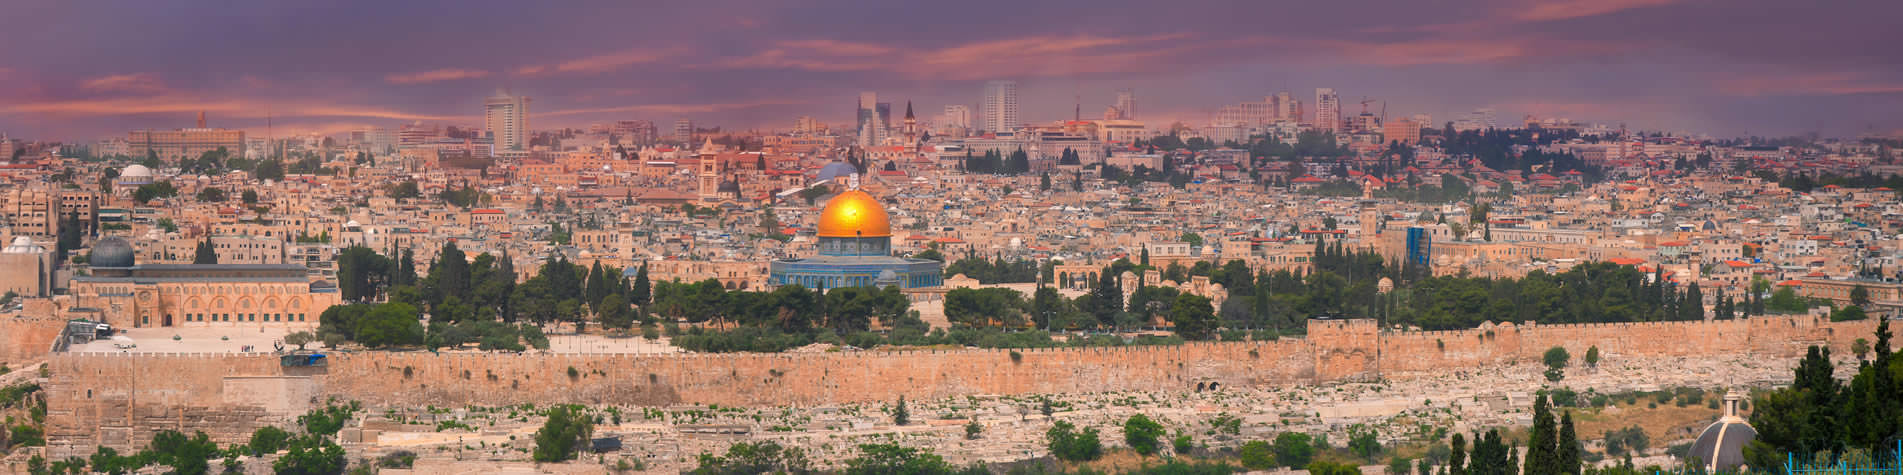 Guided Tour Holidays in Israel